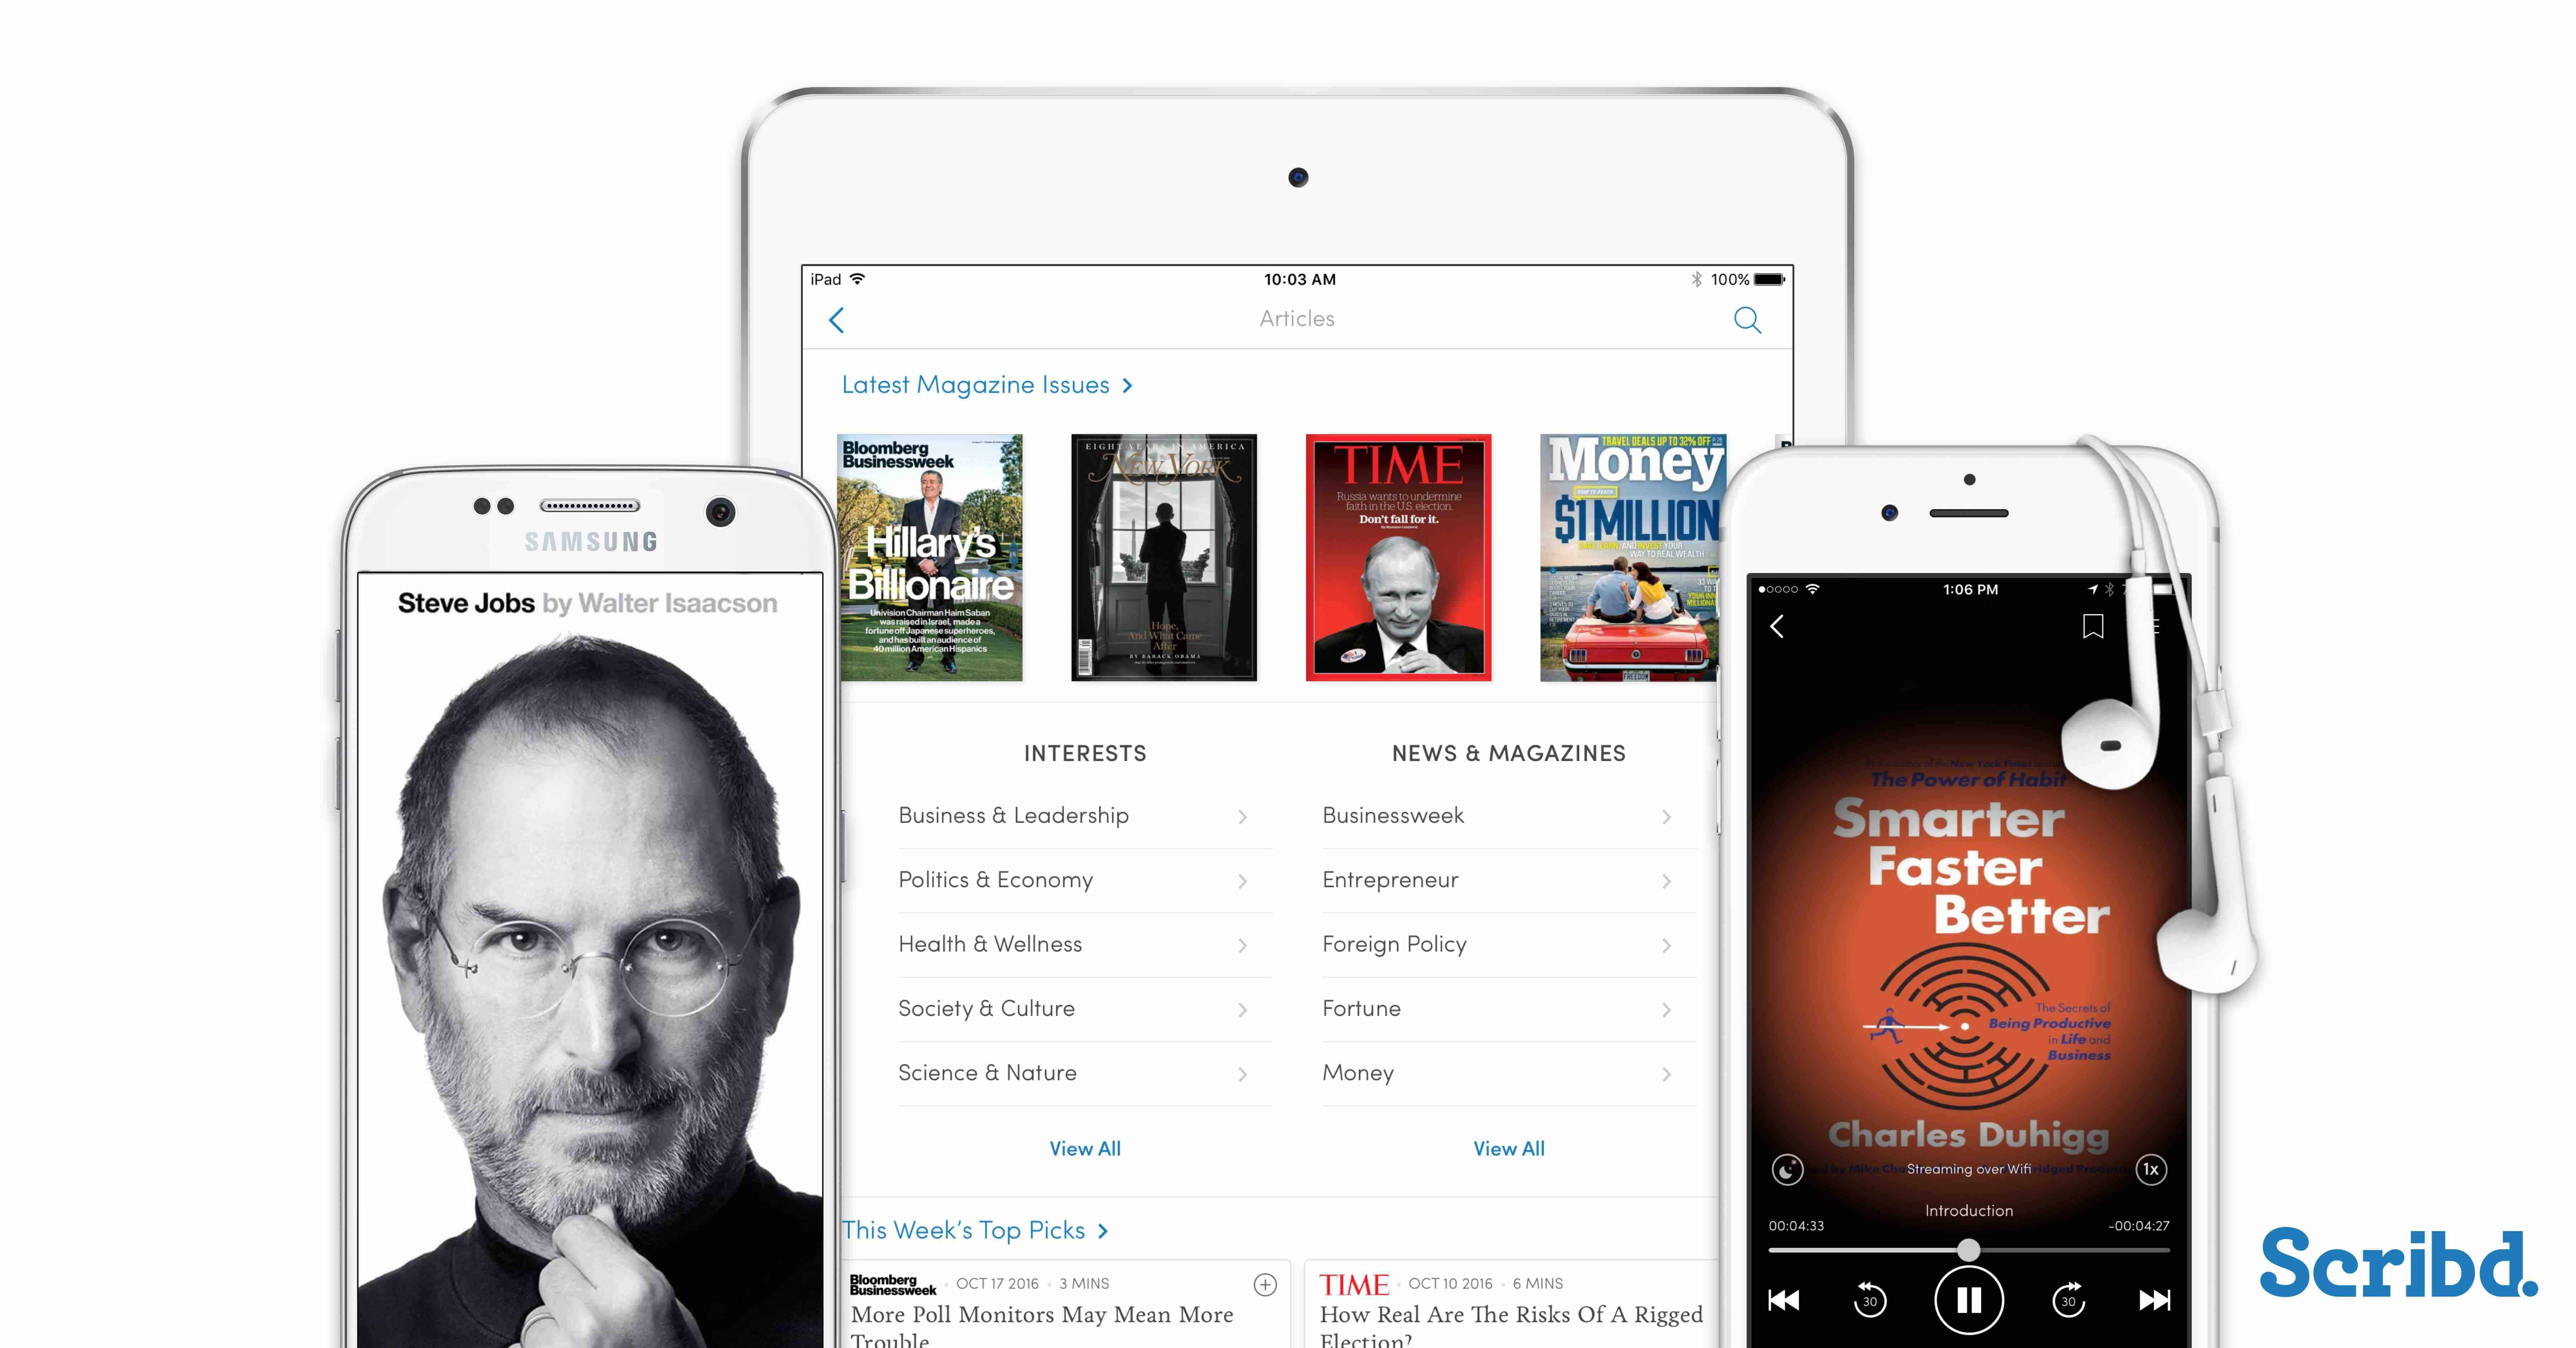 scribd-articles-product-image_final